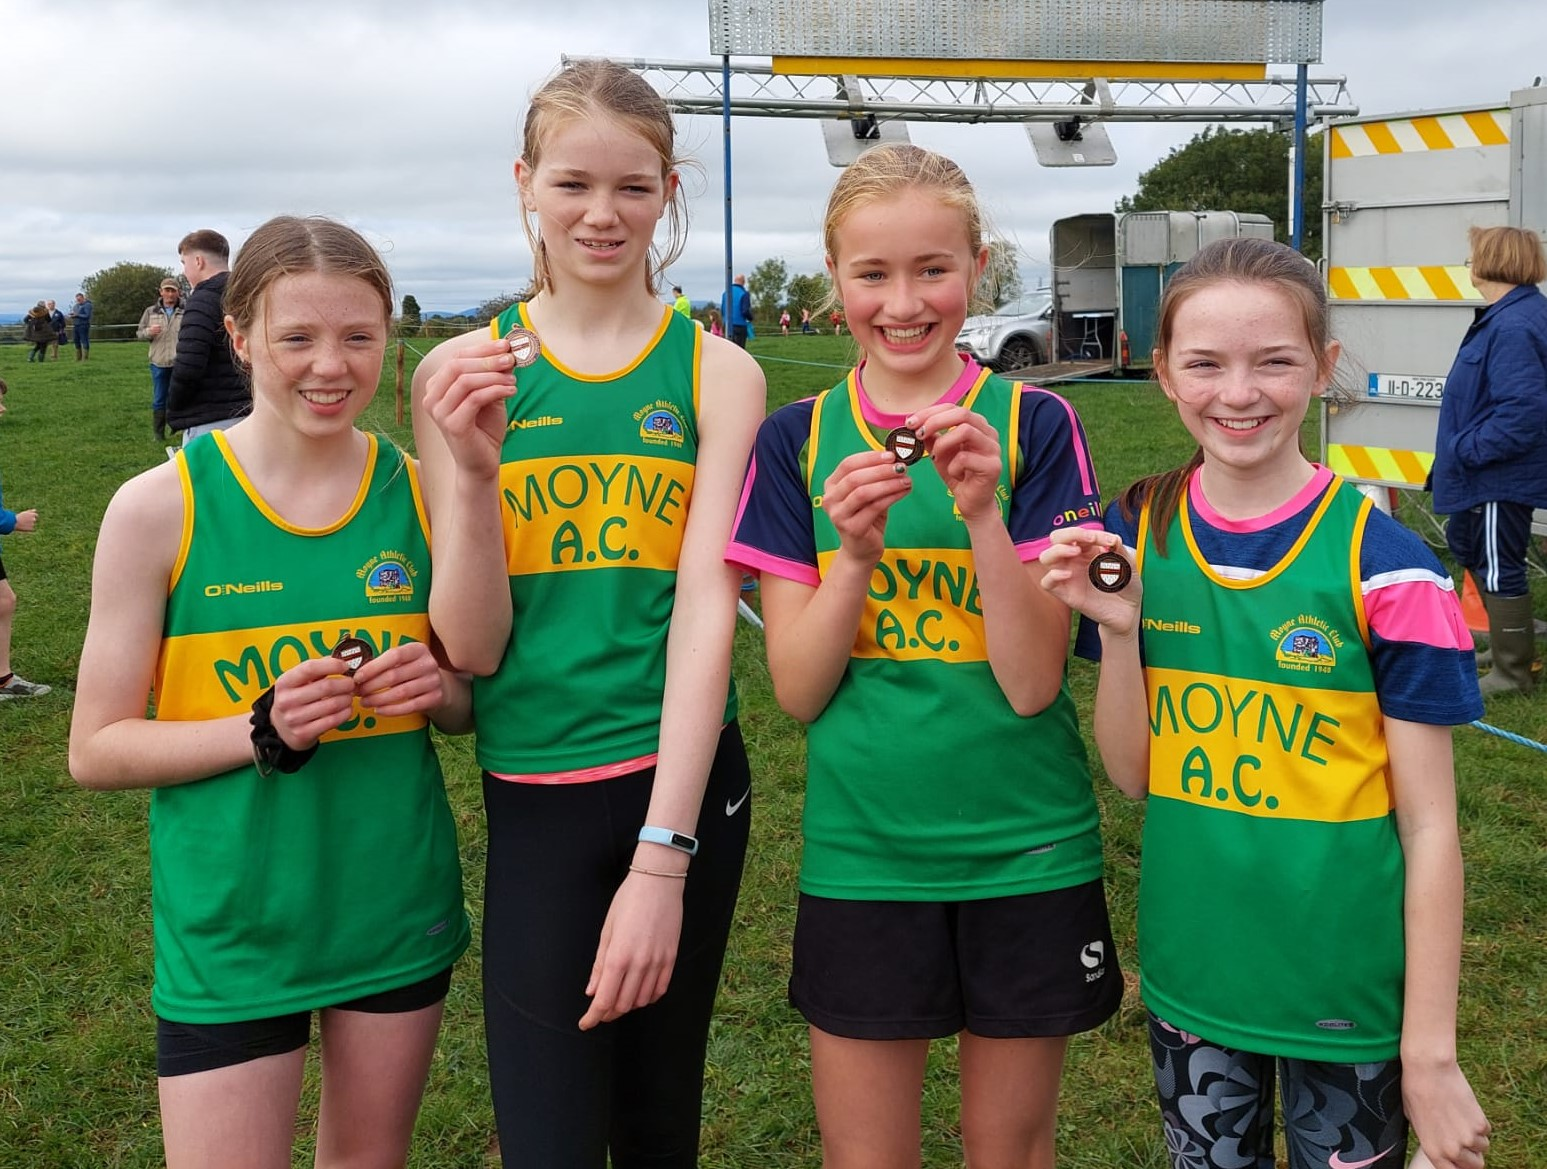 2021 County Juvenile Cross Country Relay Championships